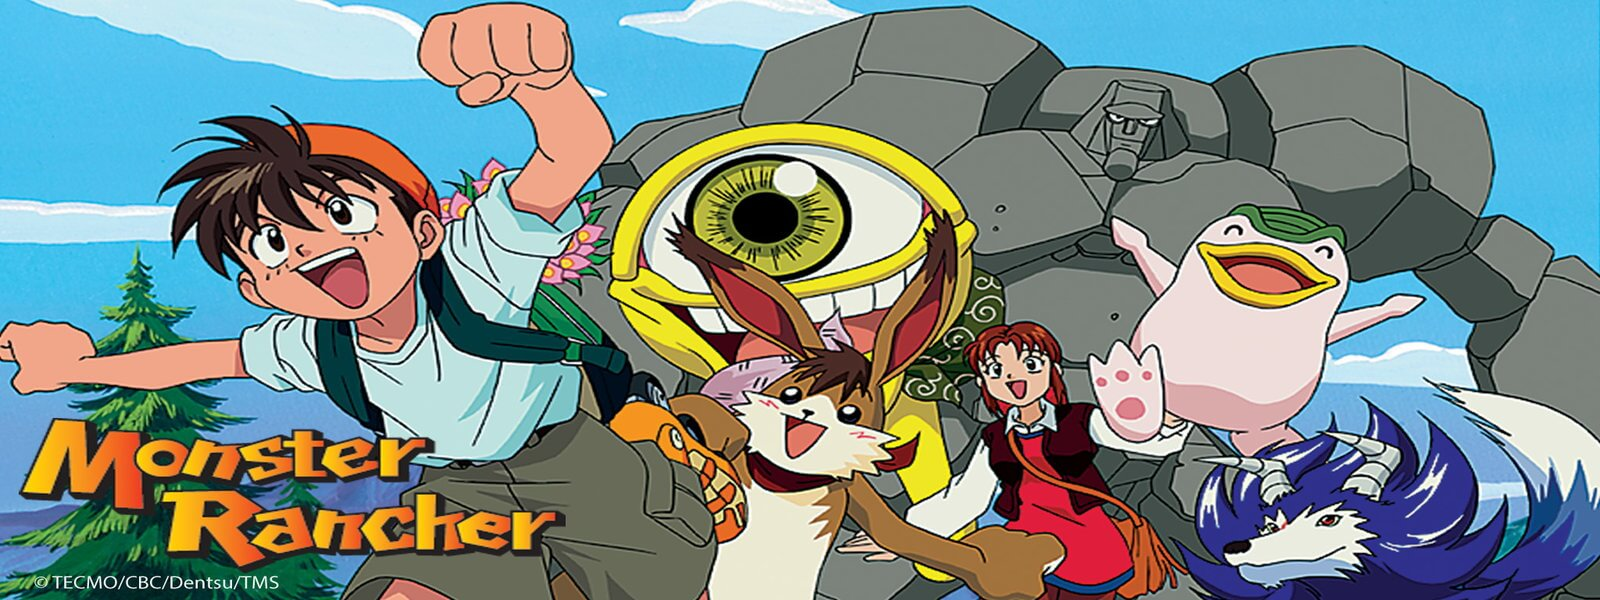 Monster Rancher (Image from Hulu)